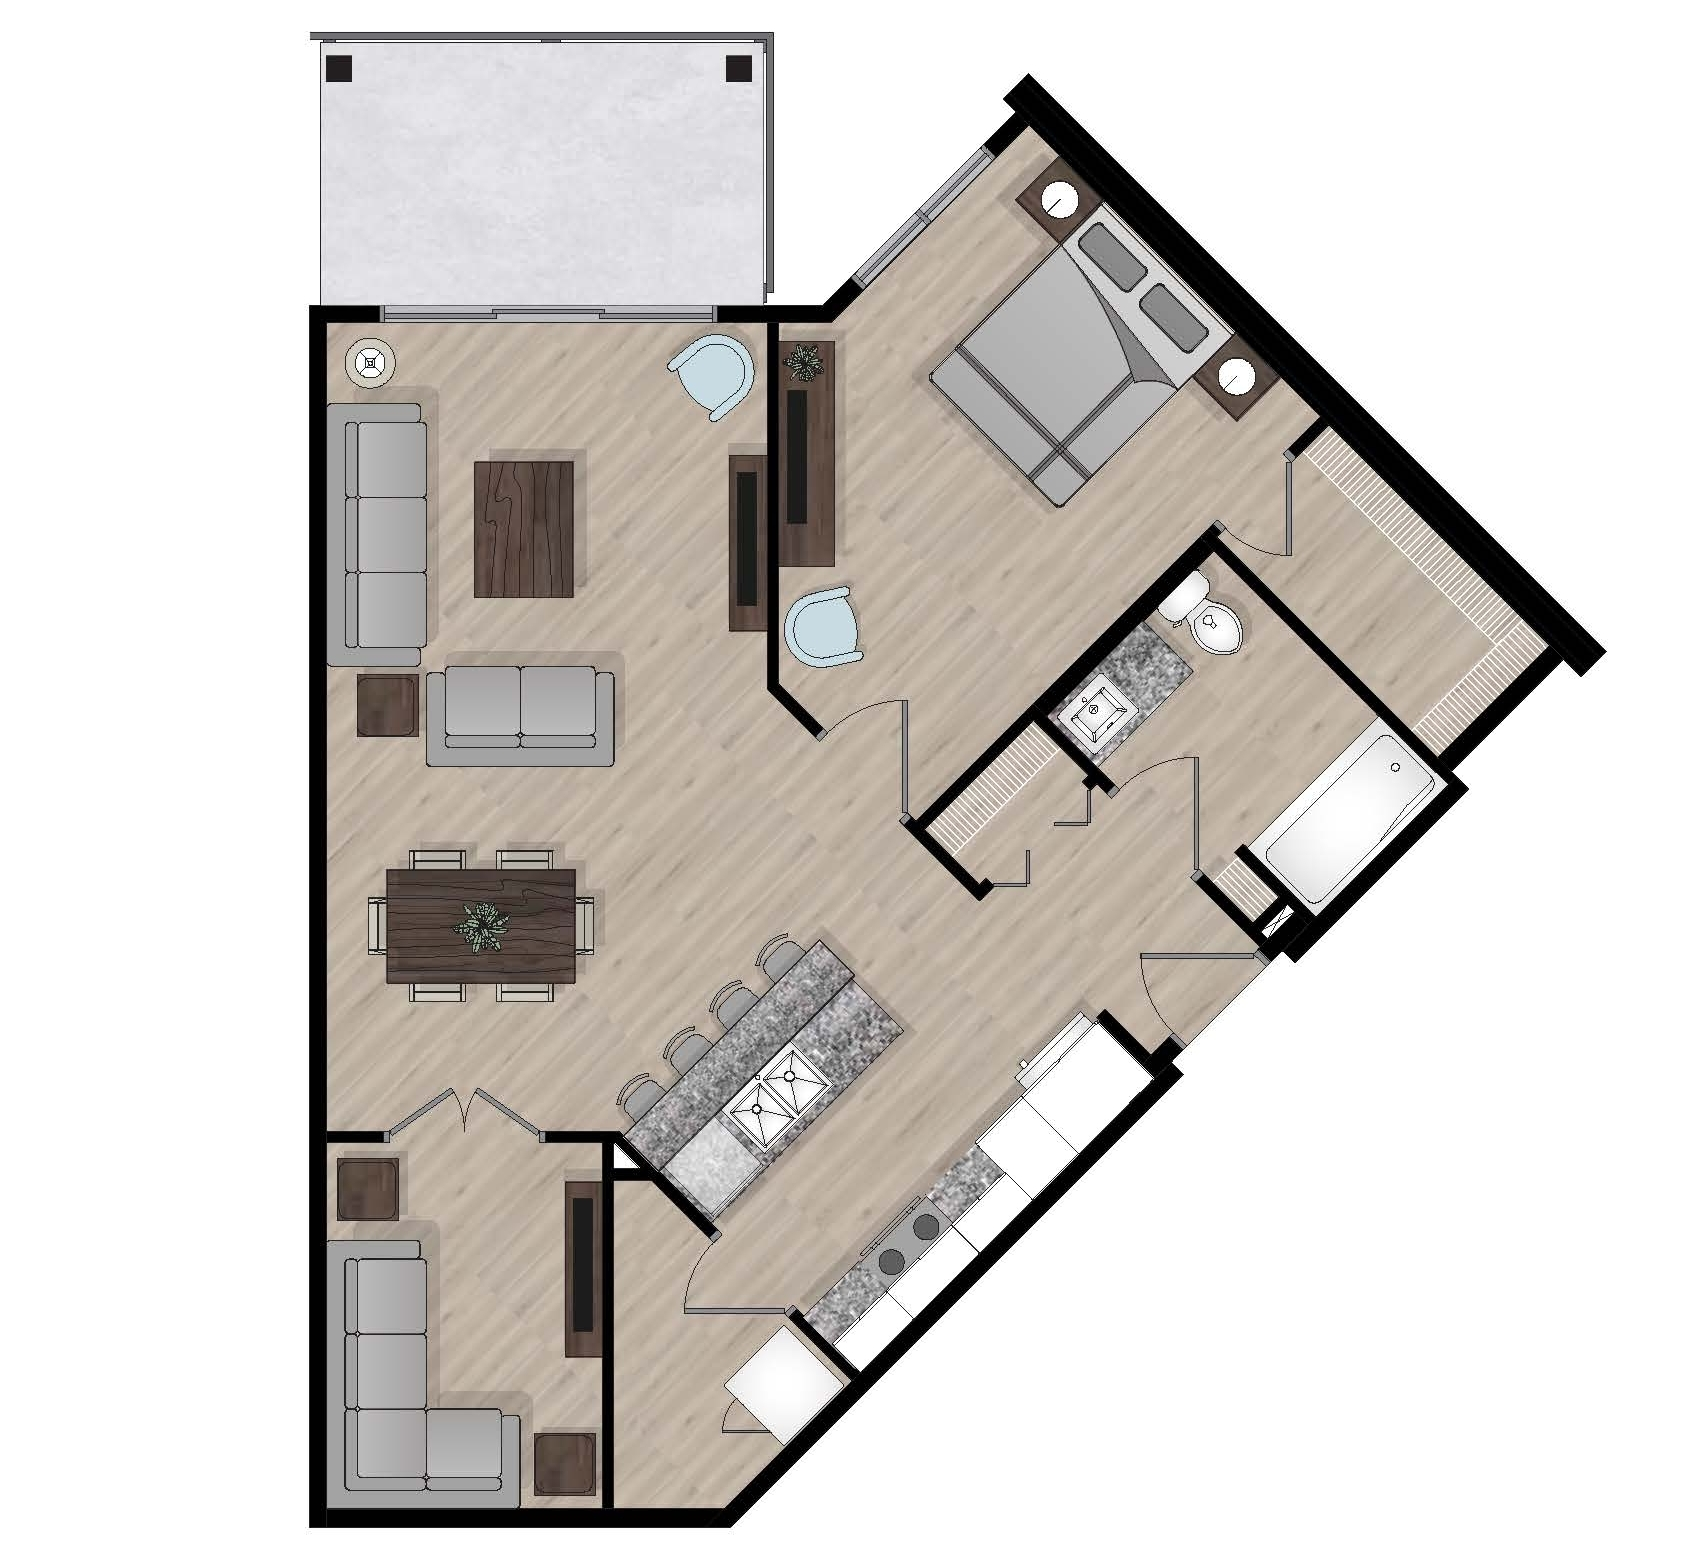 SUITE B2 - 833 SQ.FT1 BEDROOM1 DEN1 BATHROOM